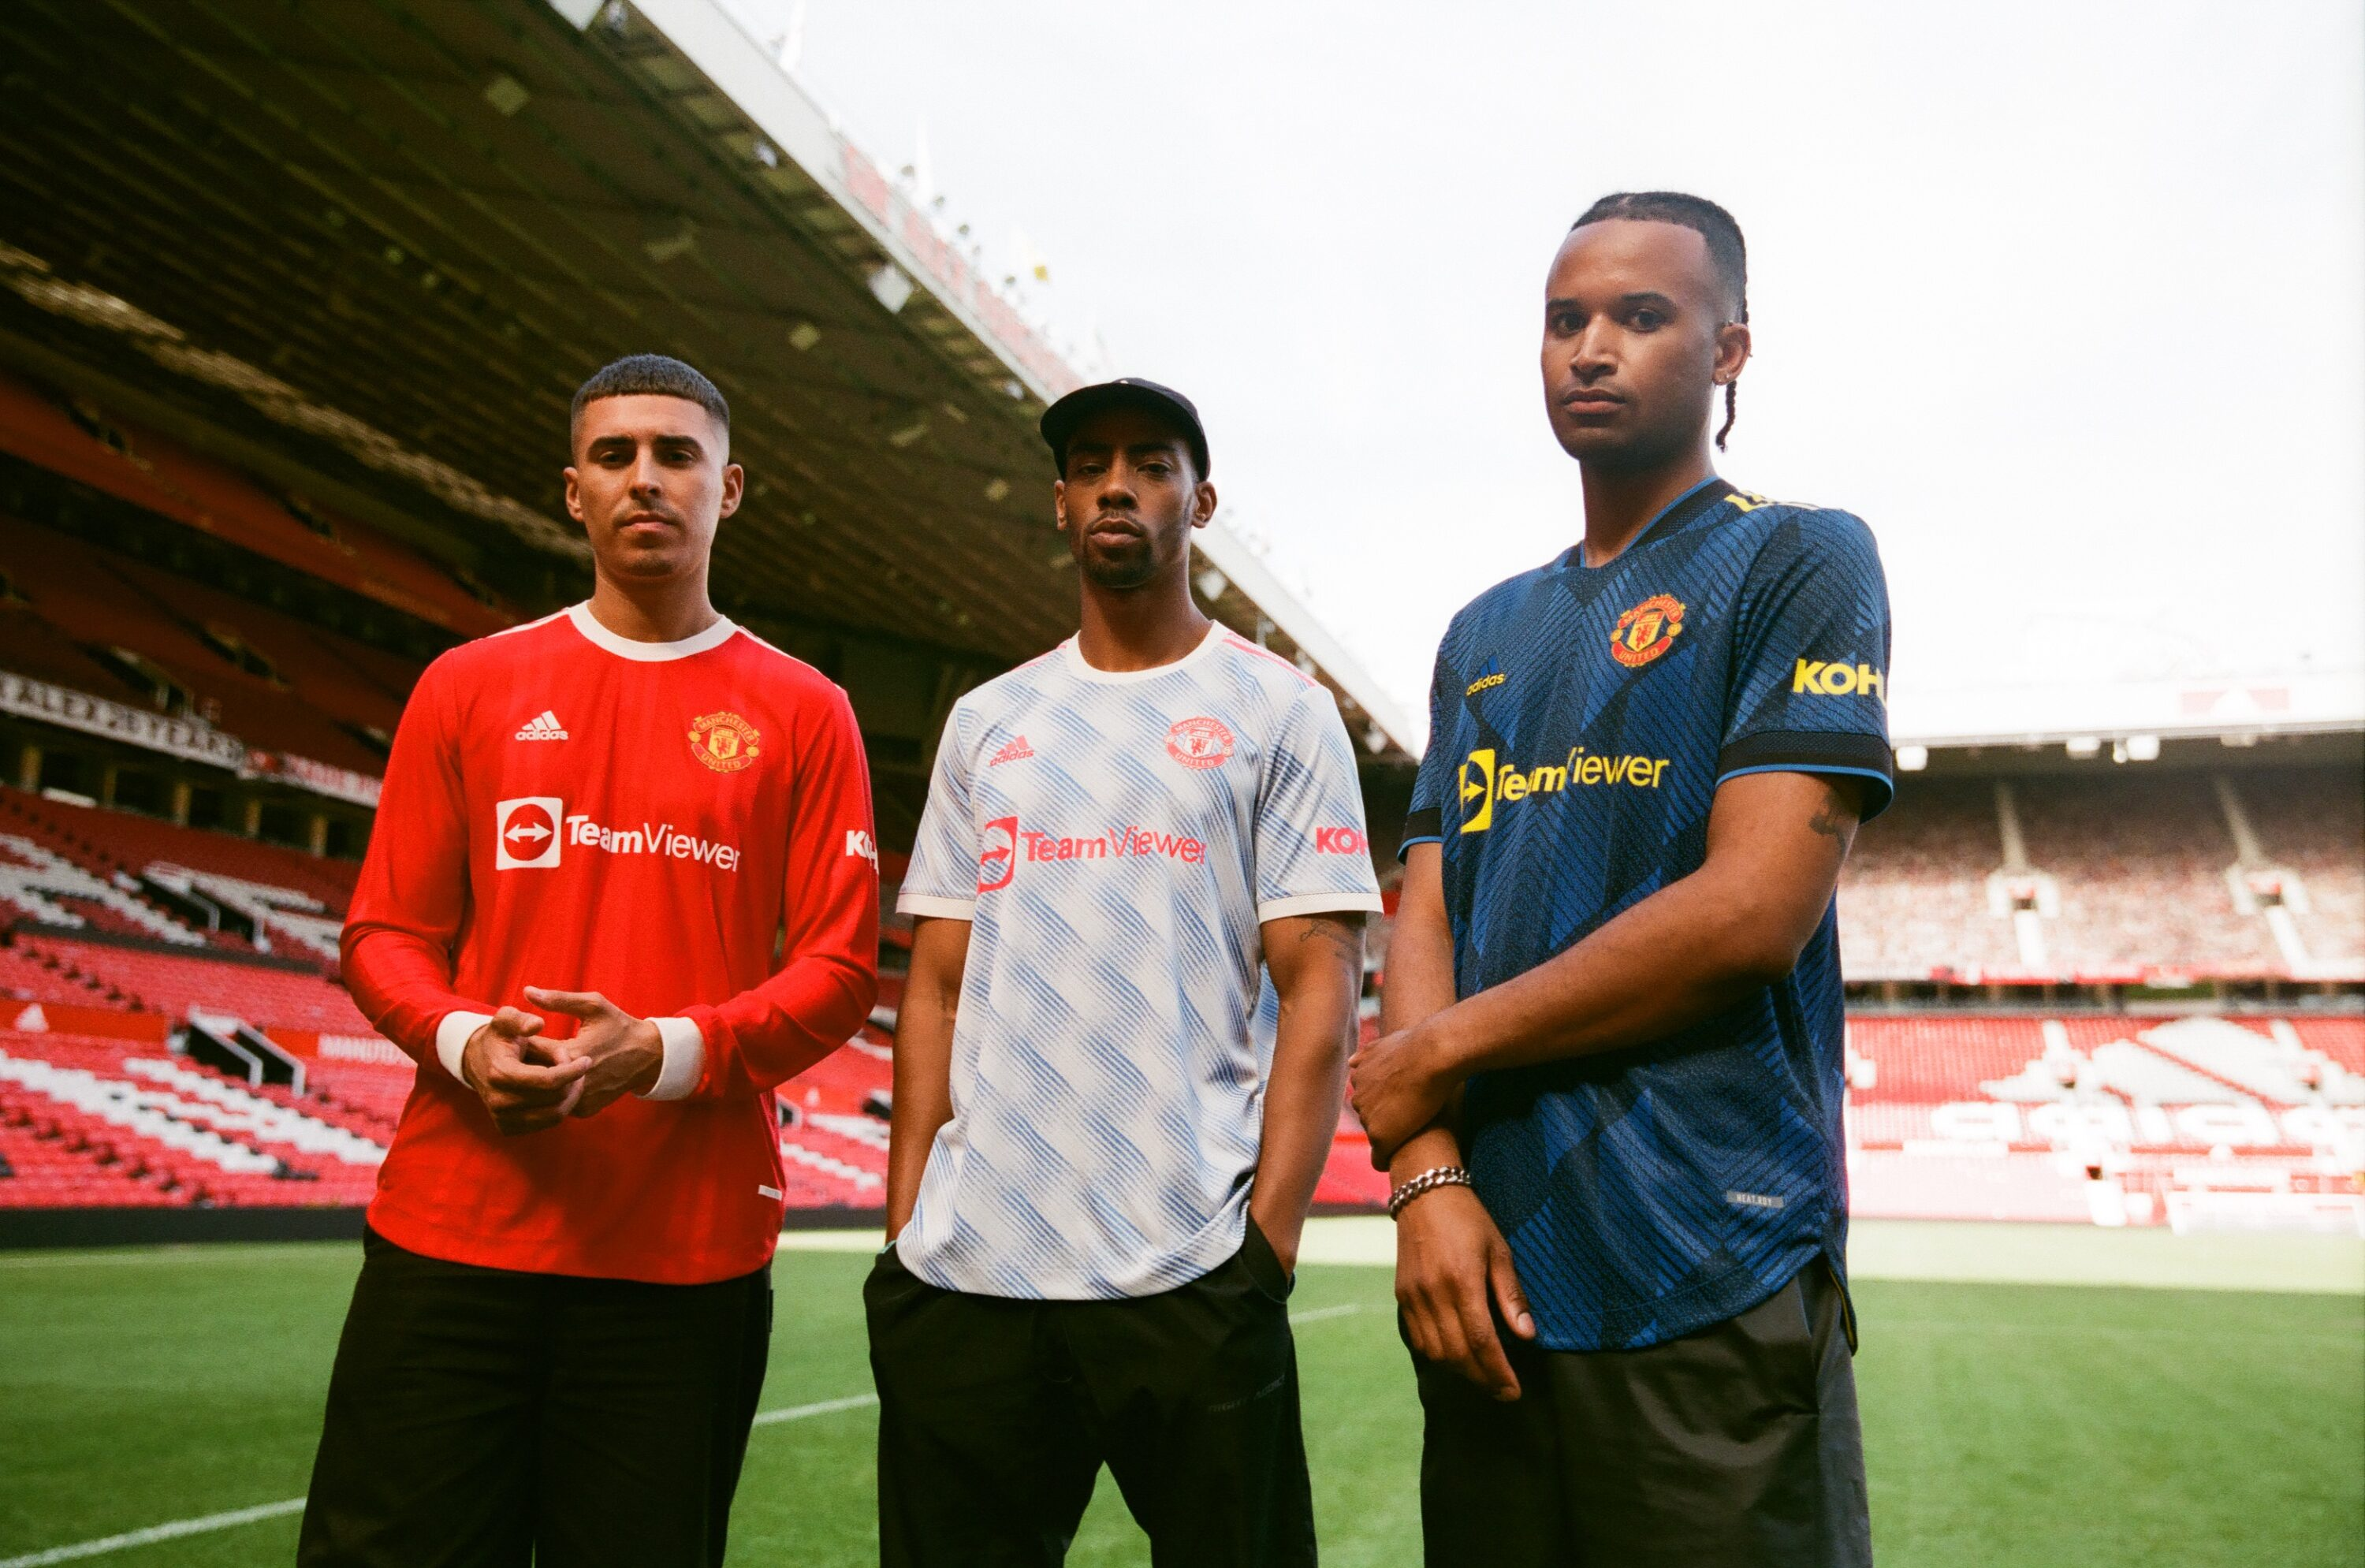 Made In Manchester: Mason Collective